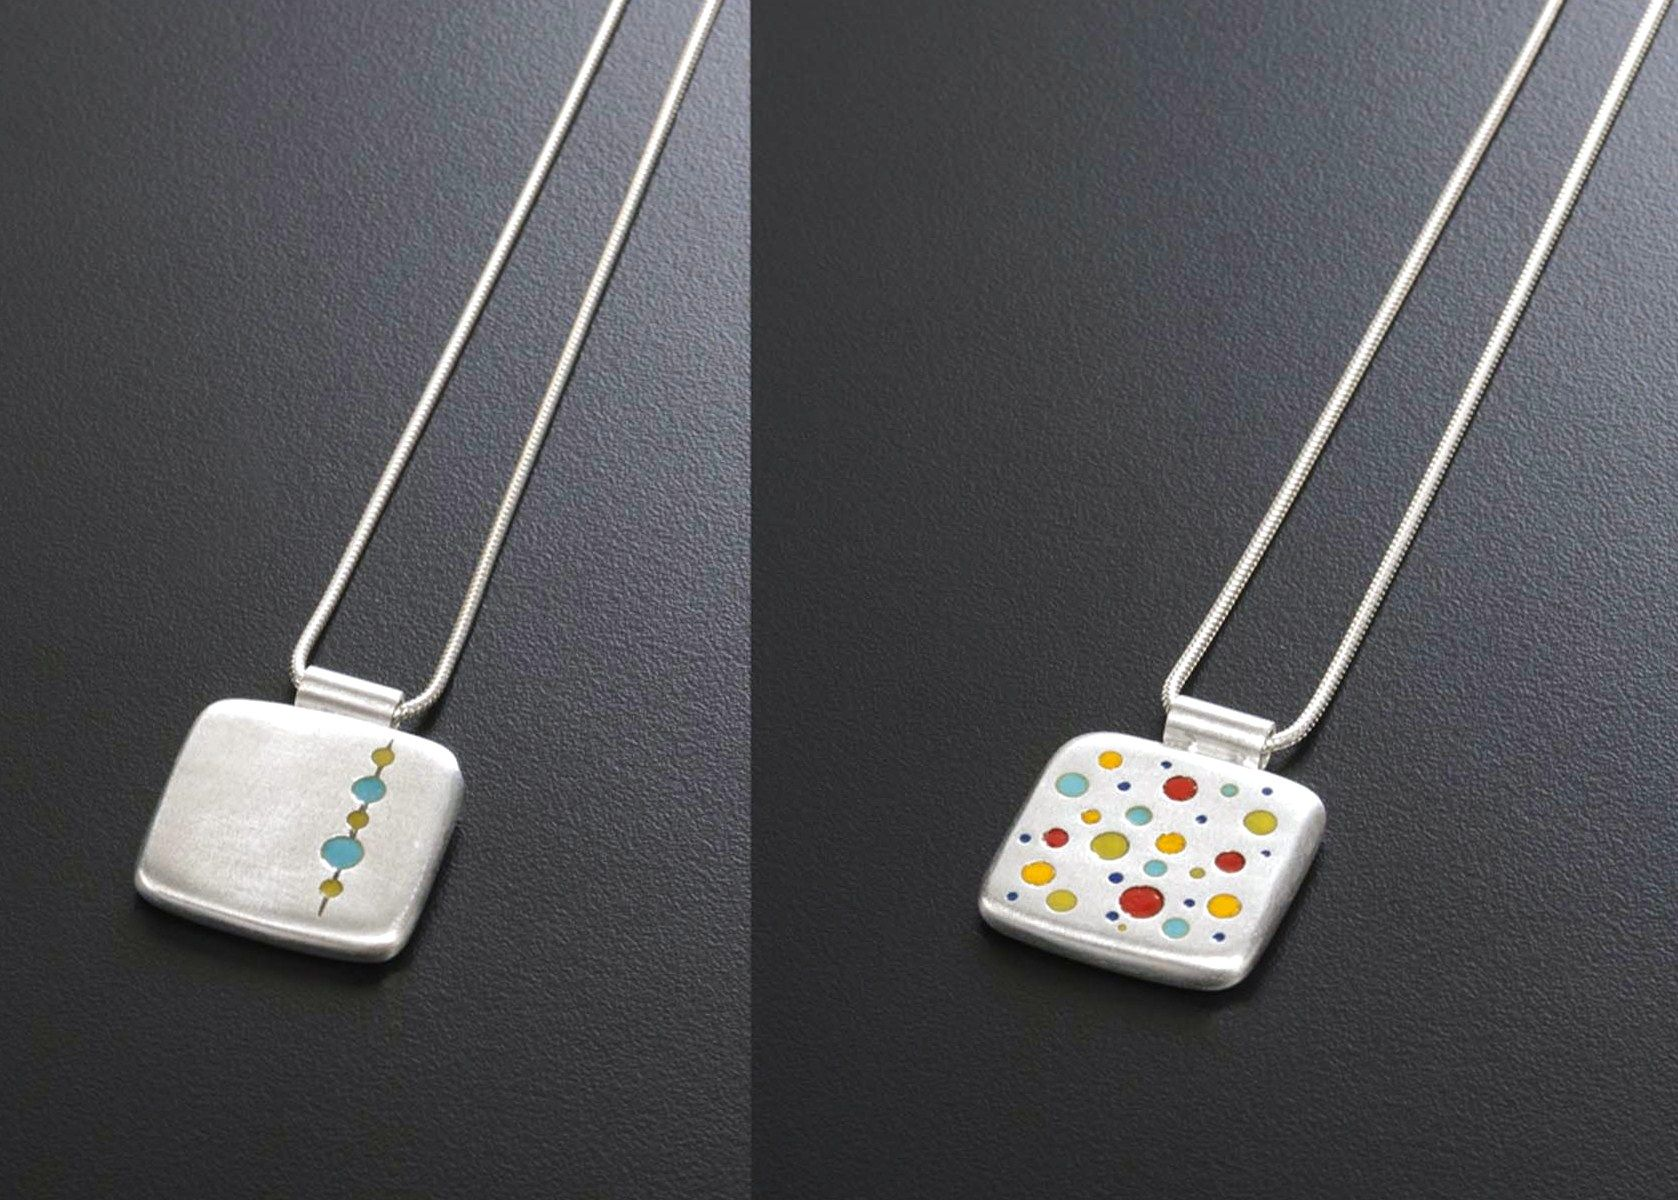 51. Claudia Abderhalden, jeweler. Illustrated are the front and back of a pendant cast from fine silver and kiln-fired glass. www.claudiaAdesigns.com